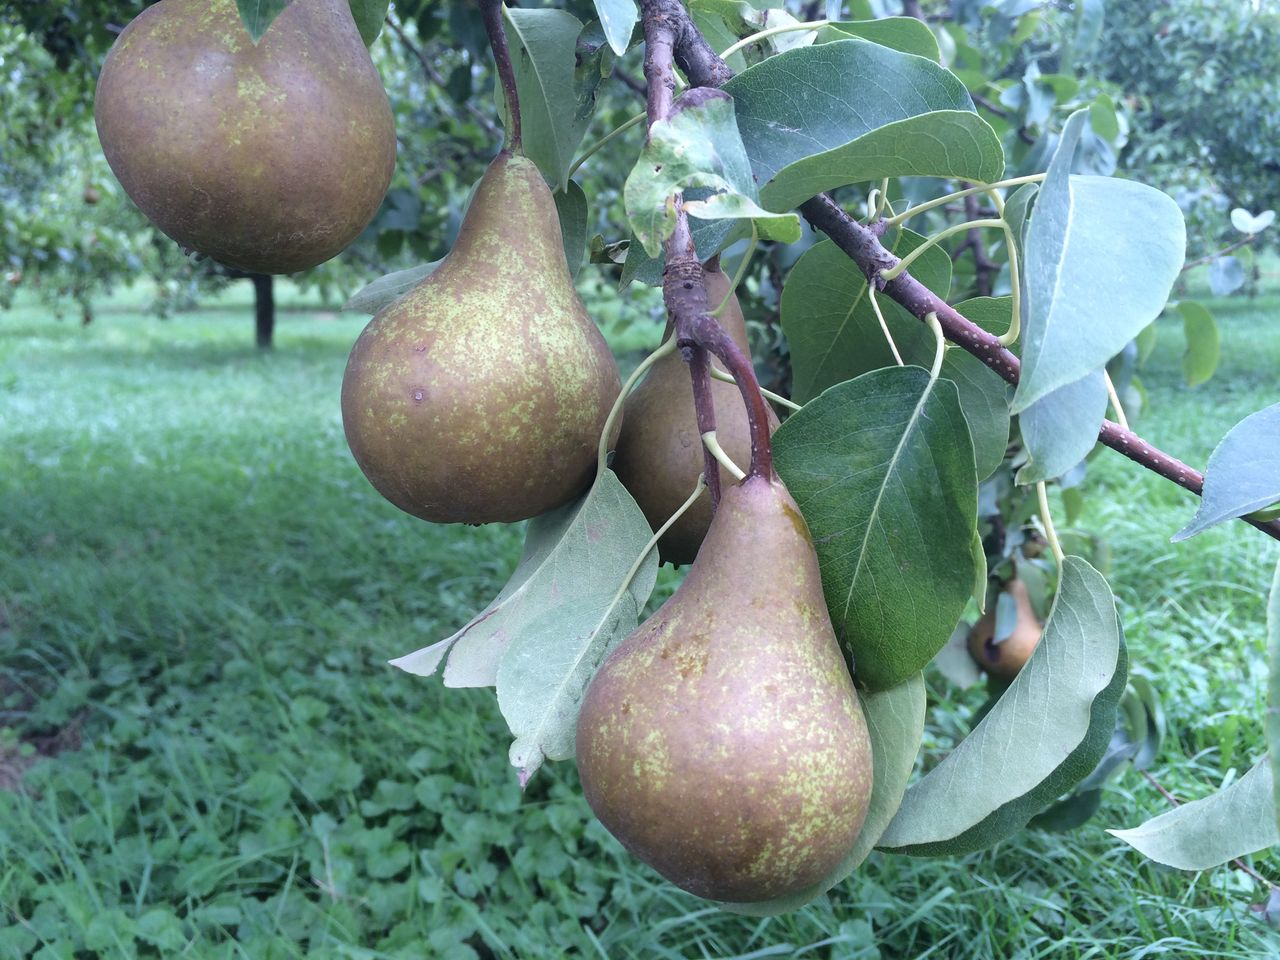 Close-up of pears growing on tree